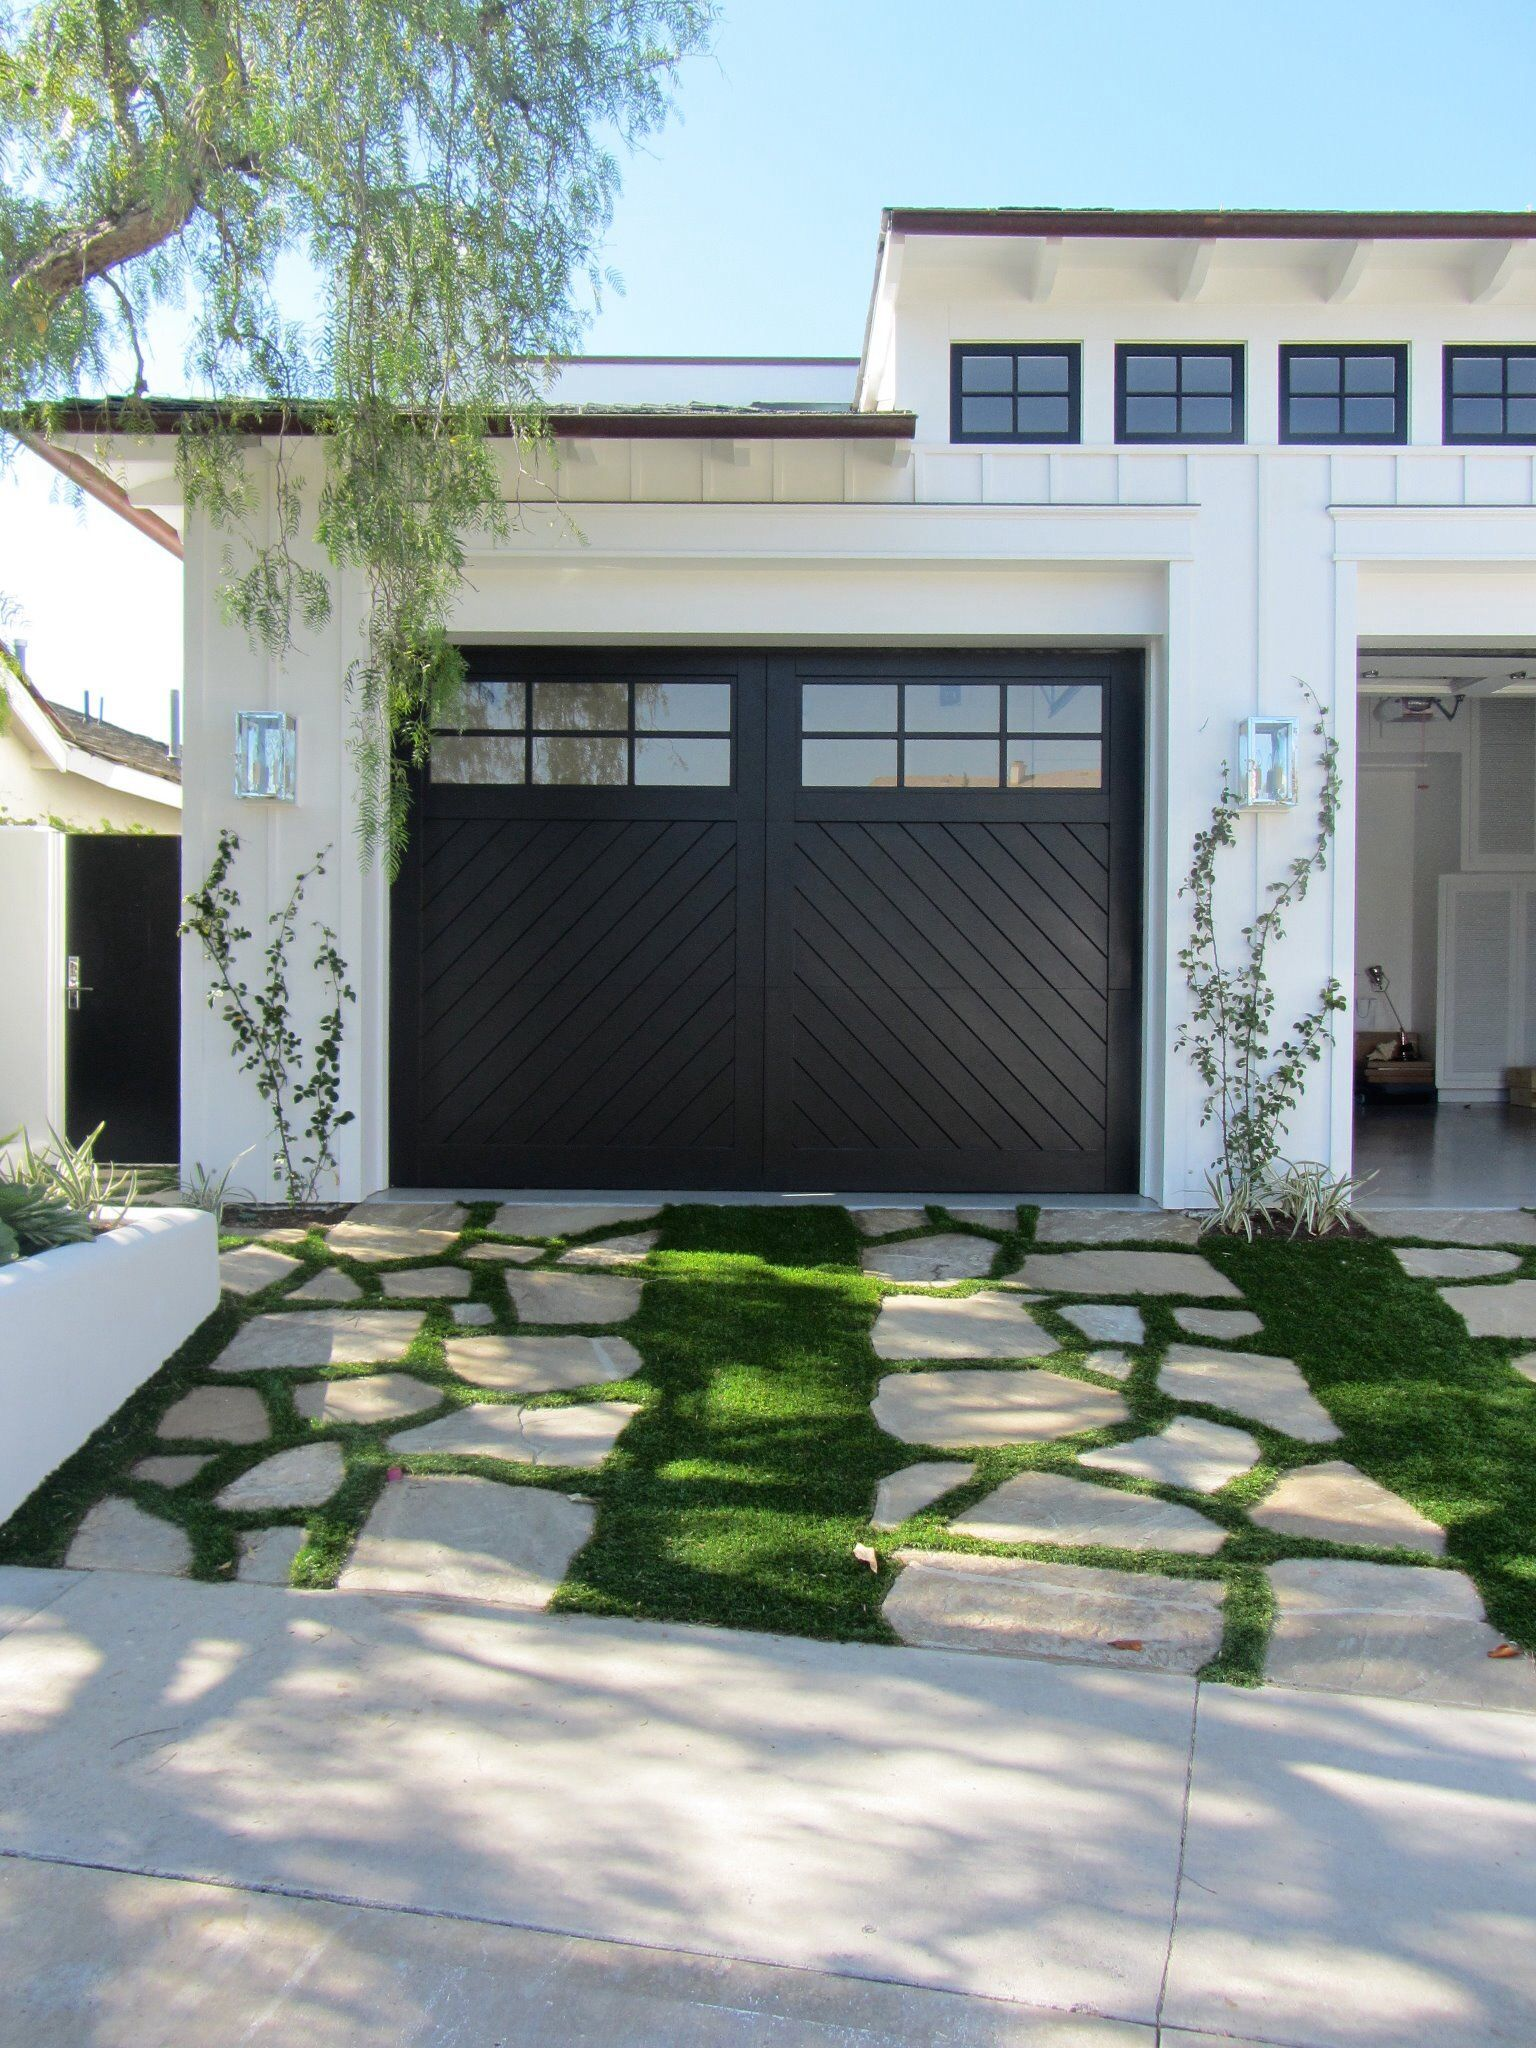 Garage door windows that open  Synthetic turf with flag stone llywoodgardendesign